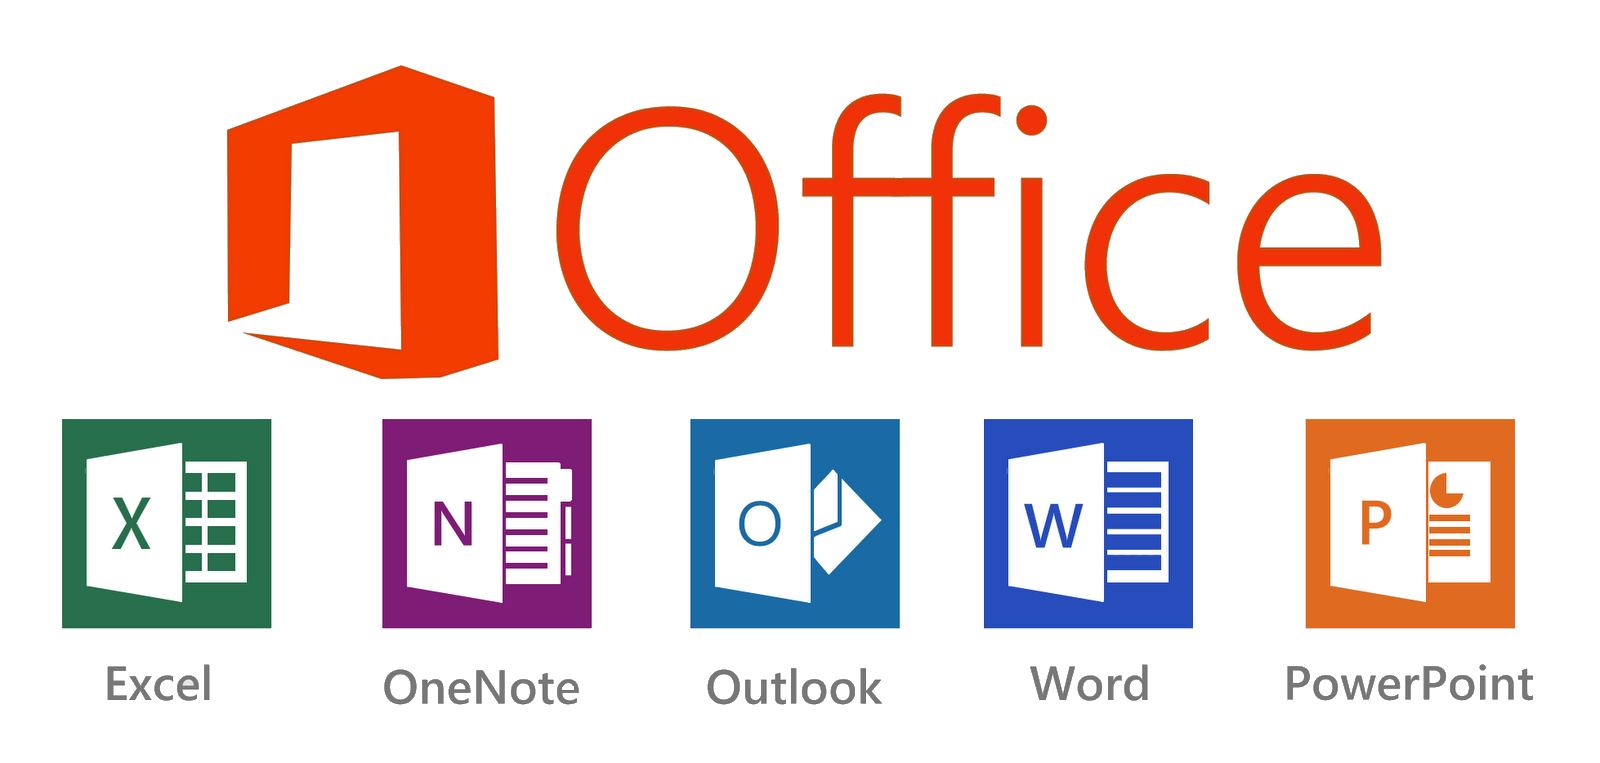 Download - Microsoft Office 2016